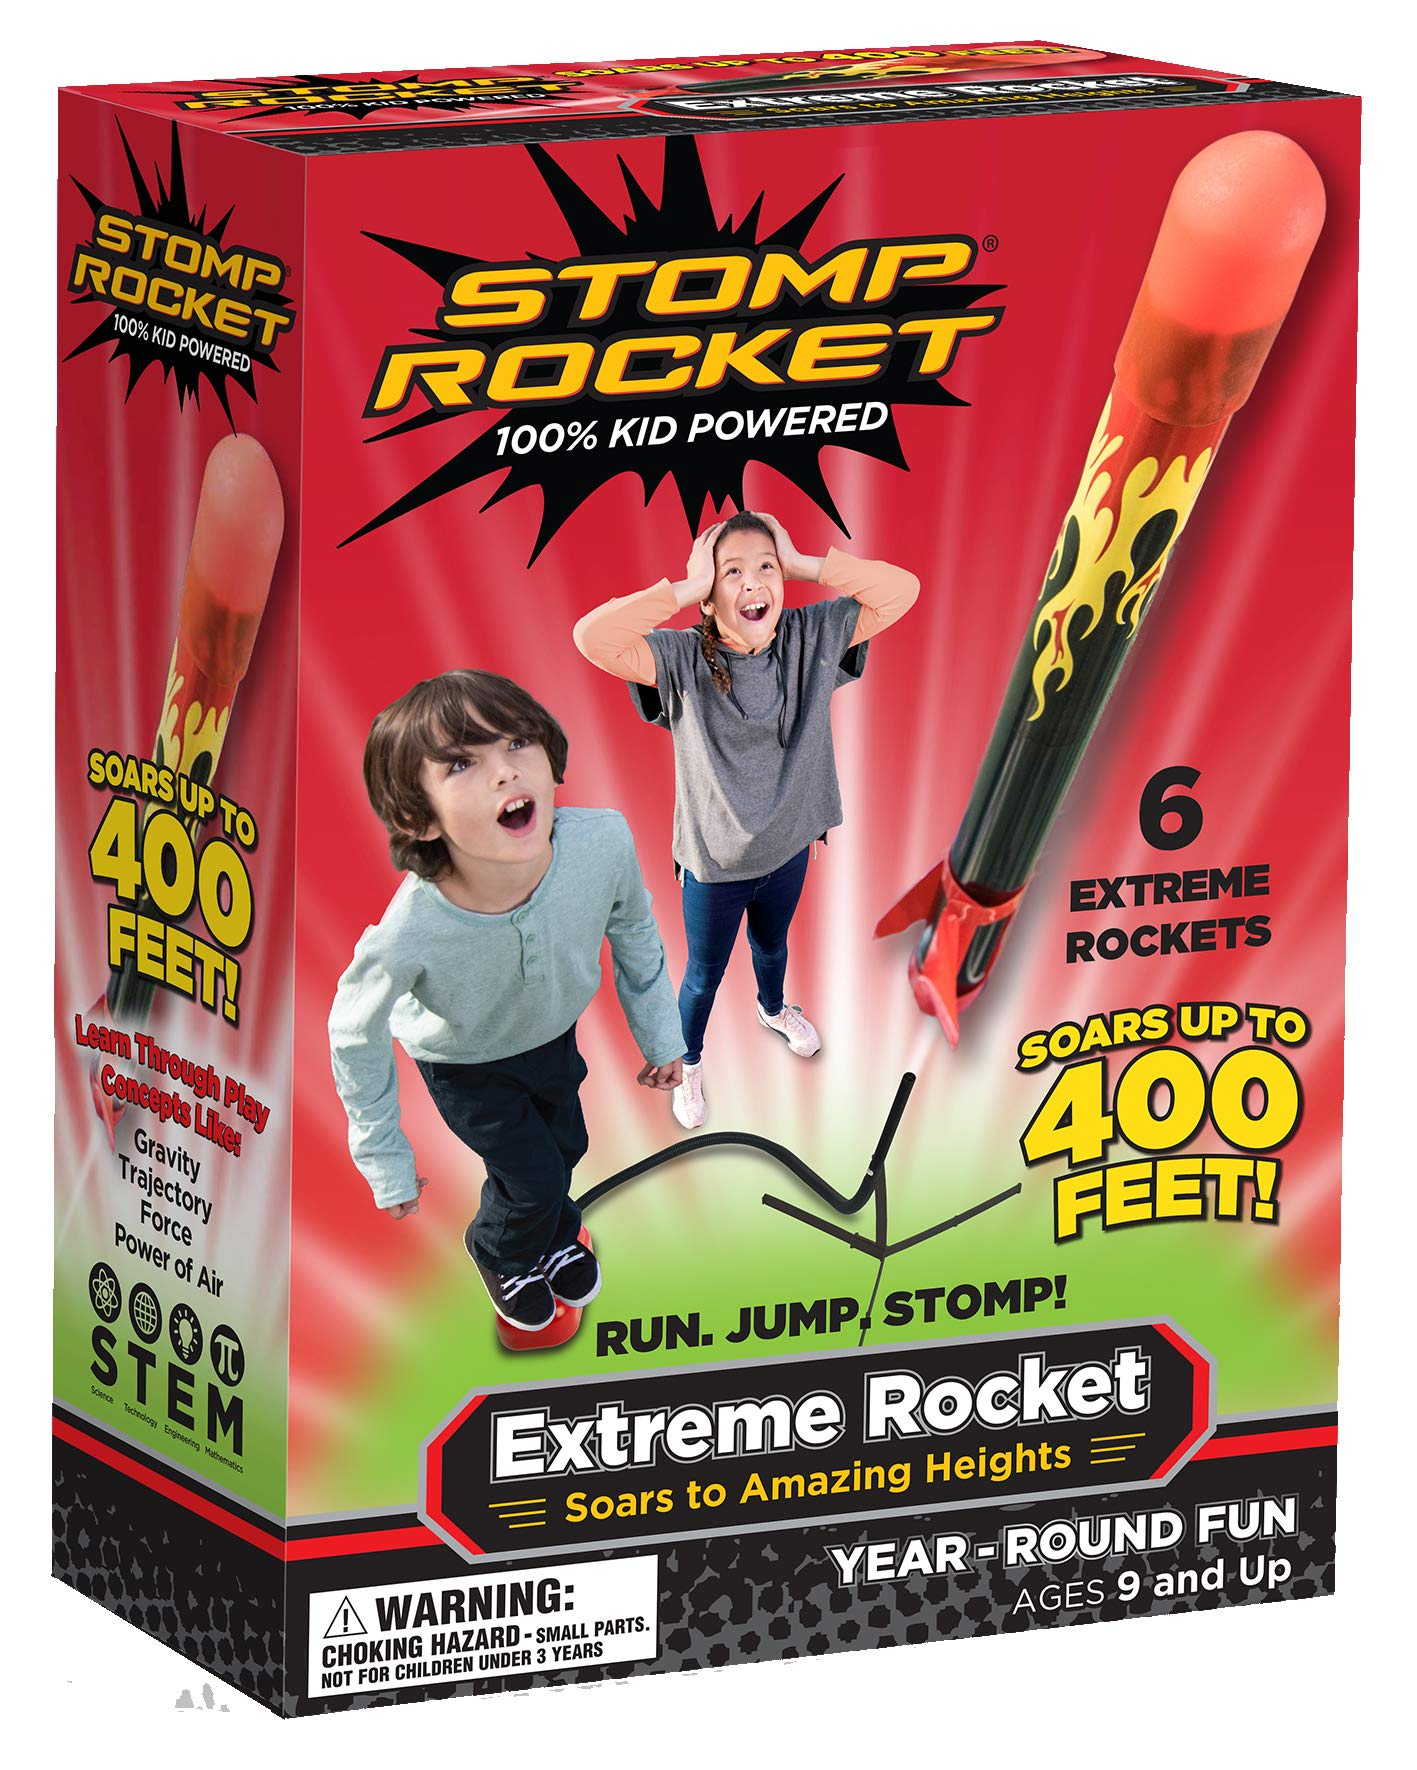 Stomp Rocket Extreme Rocket 6 Rockets - Outdoor Rocket Toy Gift for Boys and Girls- Comes with Toy Rocket Launcher - Ages 9 Years Up by Stomp Rocket